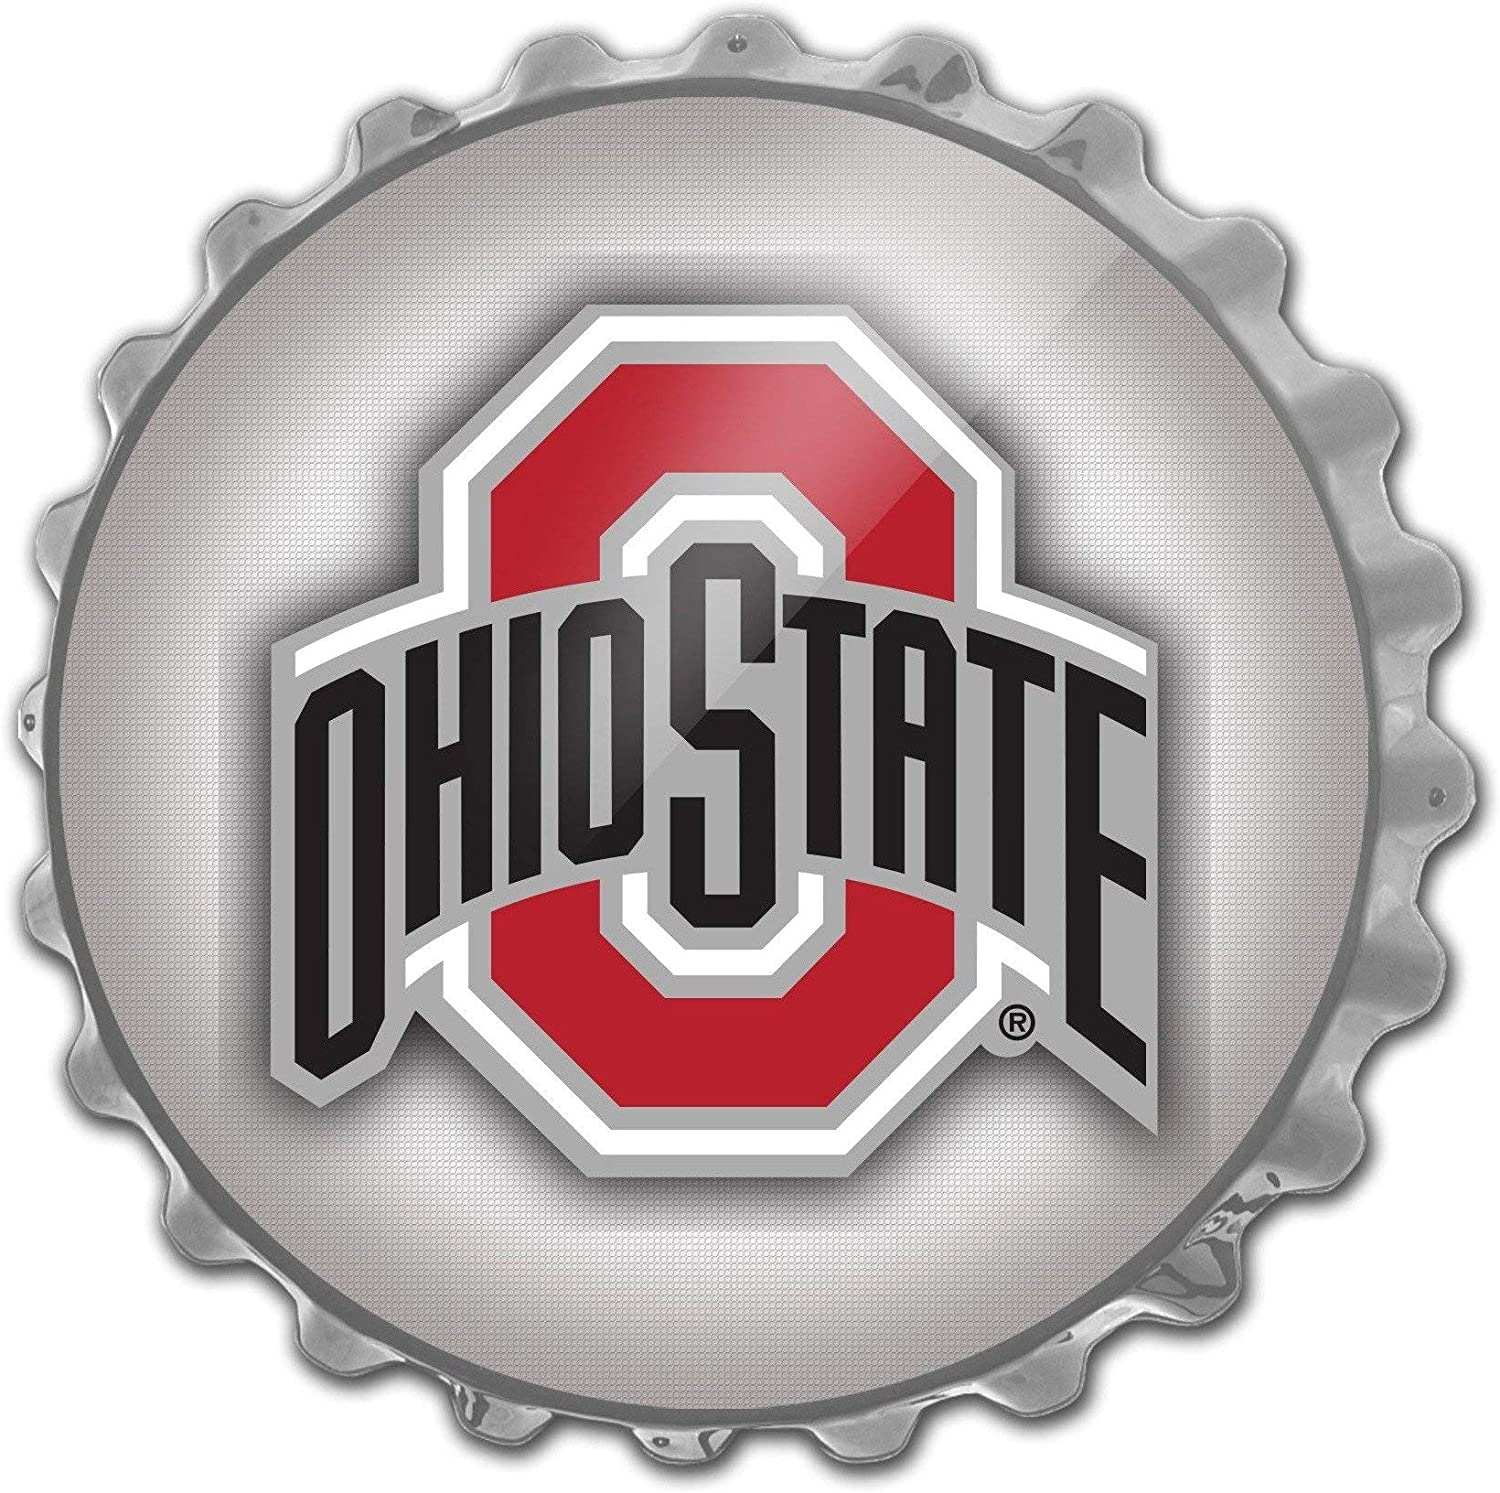 The Fan-Brand Ohio State Buckeyes - Bottle Cap Wall Sign - Large Wall Sign - Football, Basketball & Baseball Wall Decor - College Sports Decor for Home, Game Room, Fan Cave & Garage - USA Made